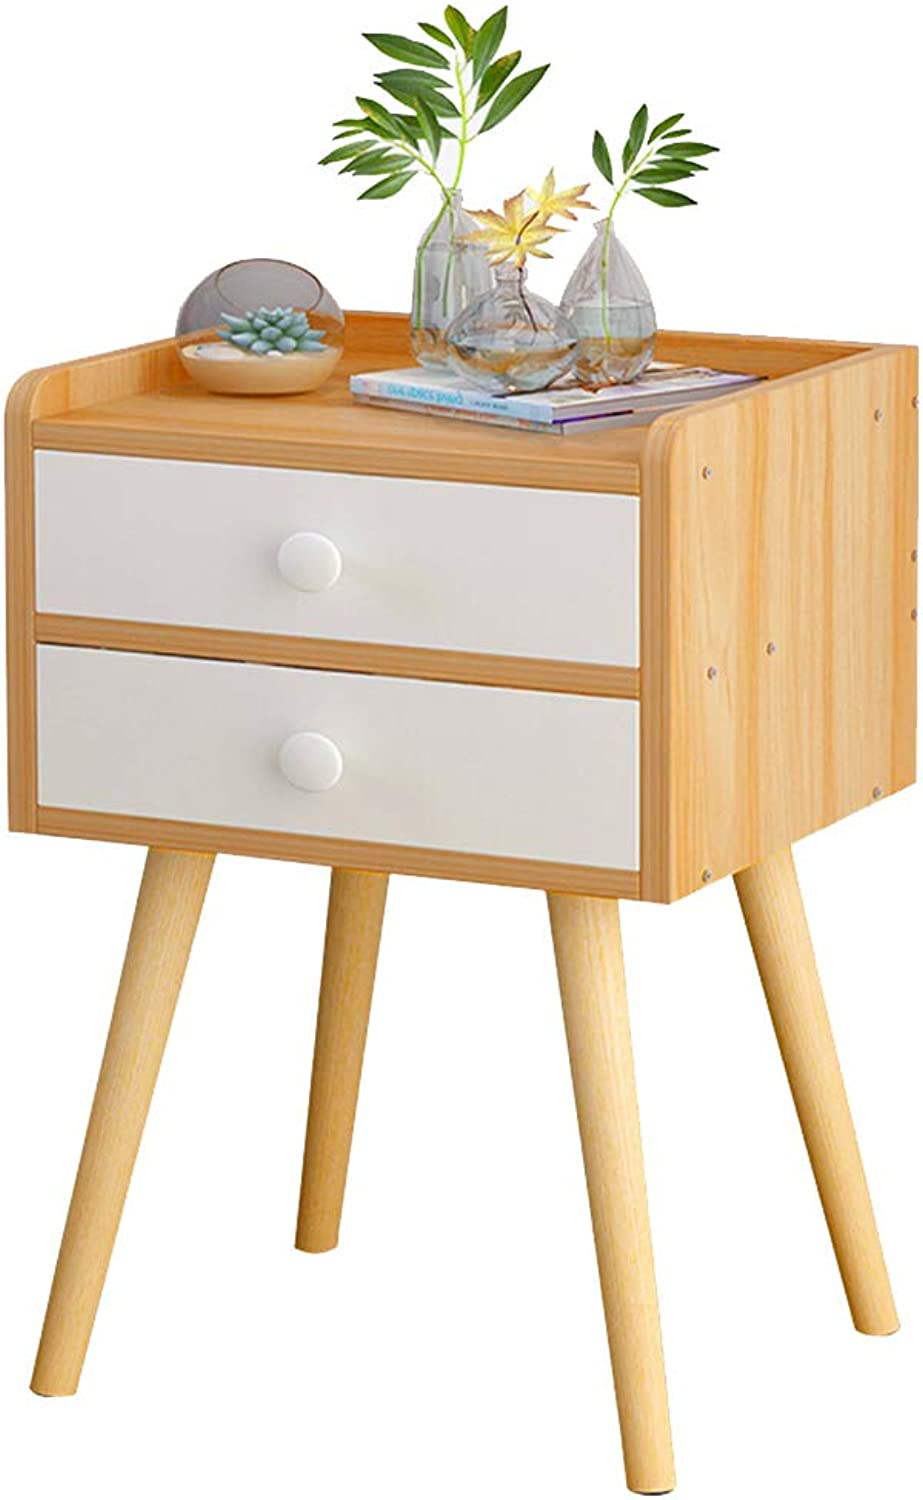 Bedside Table Cabinet with Drawer and Shelf Multipurpose Storage Unit Solid Wood Table Legs Light Wood (Size   2 Drawer)